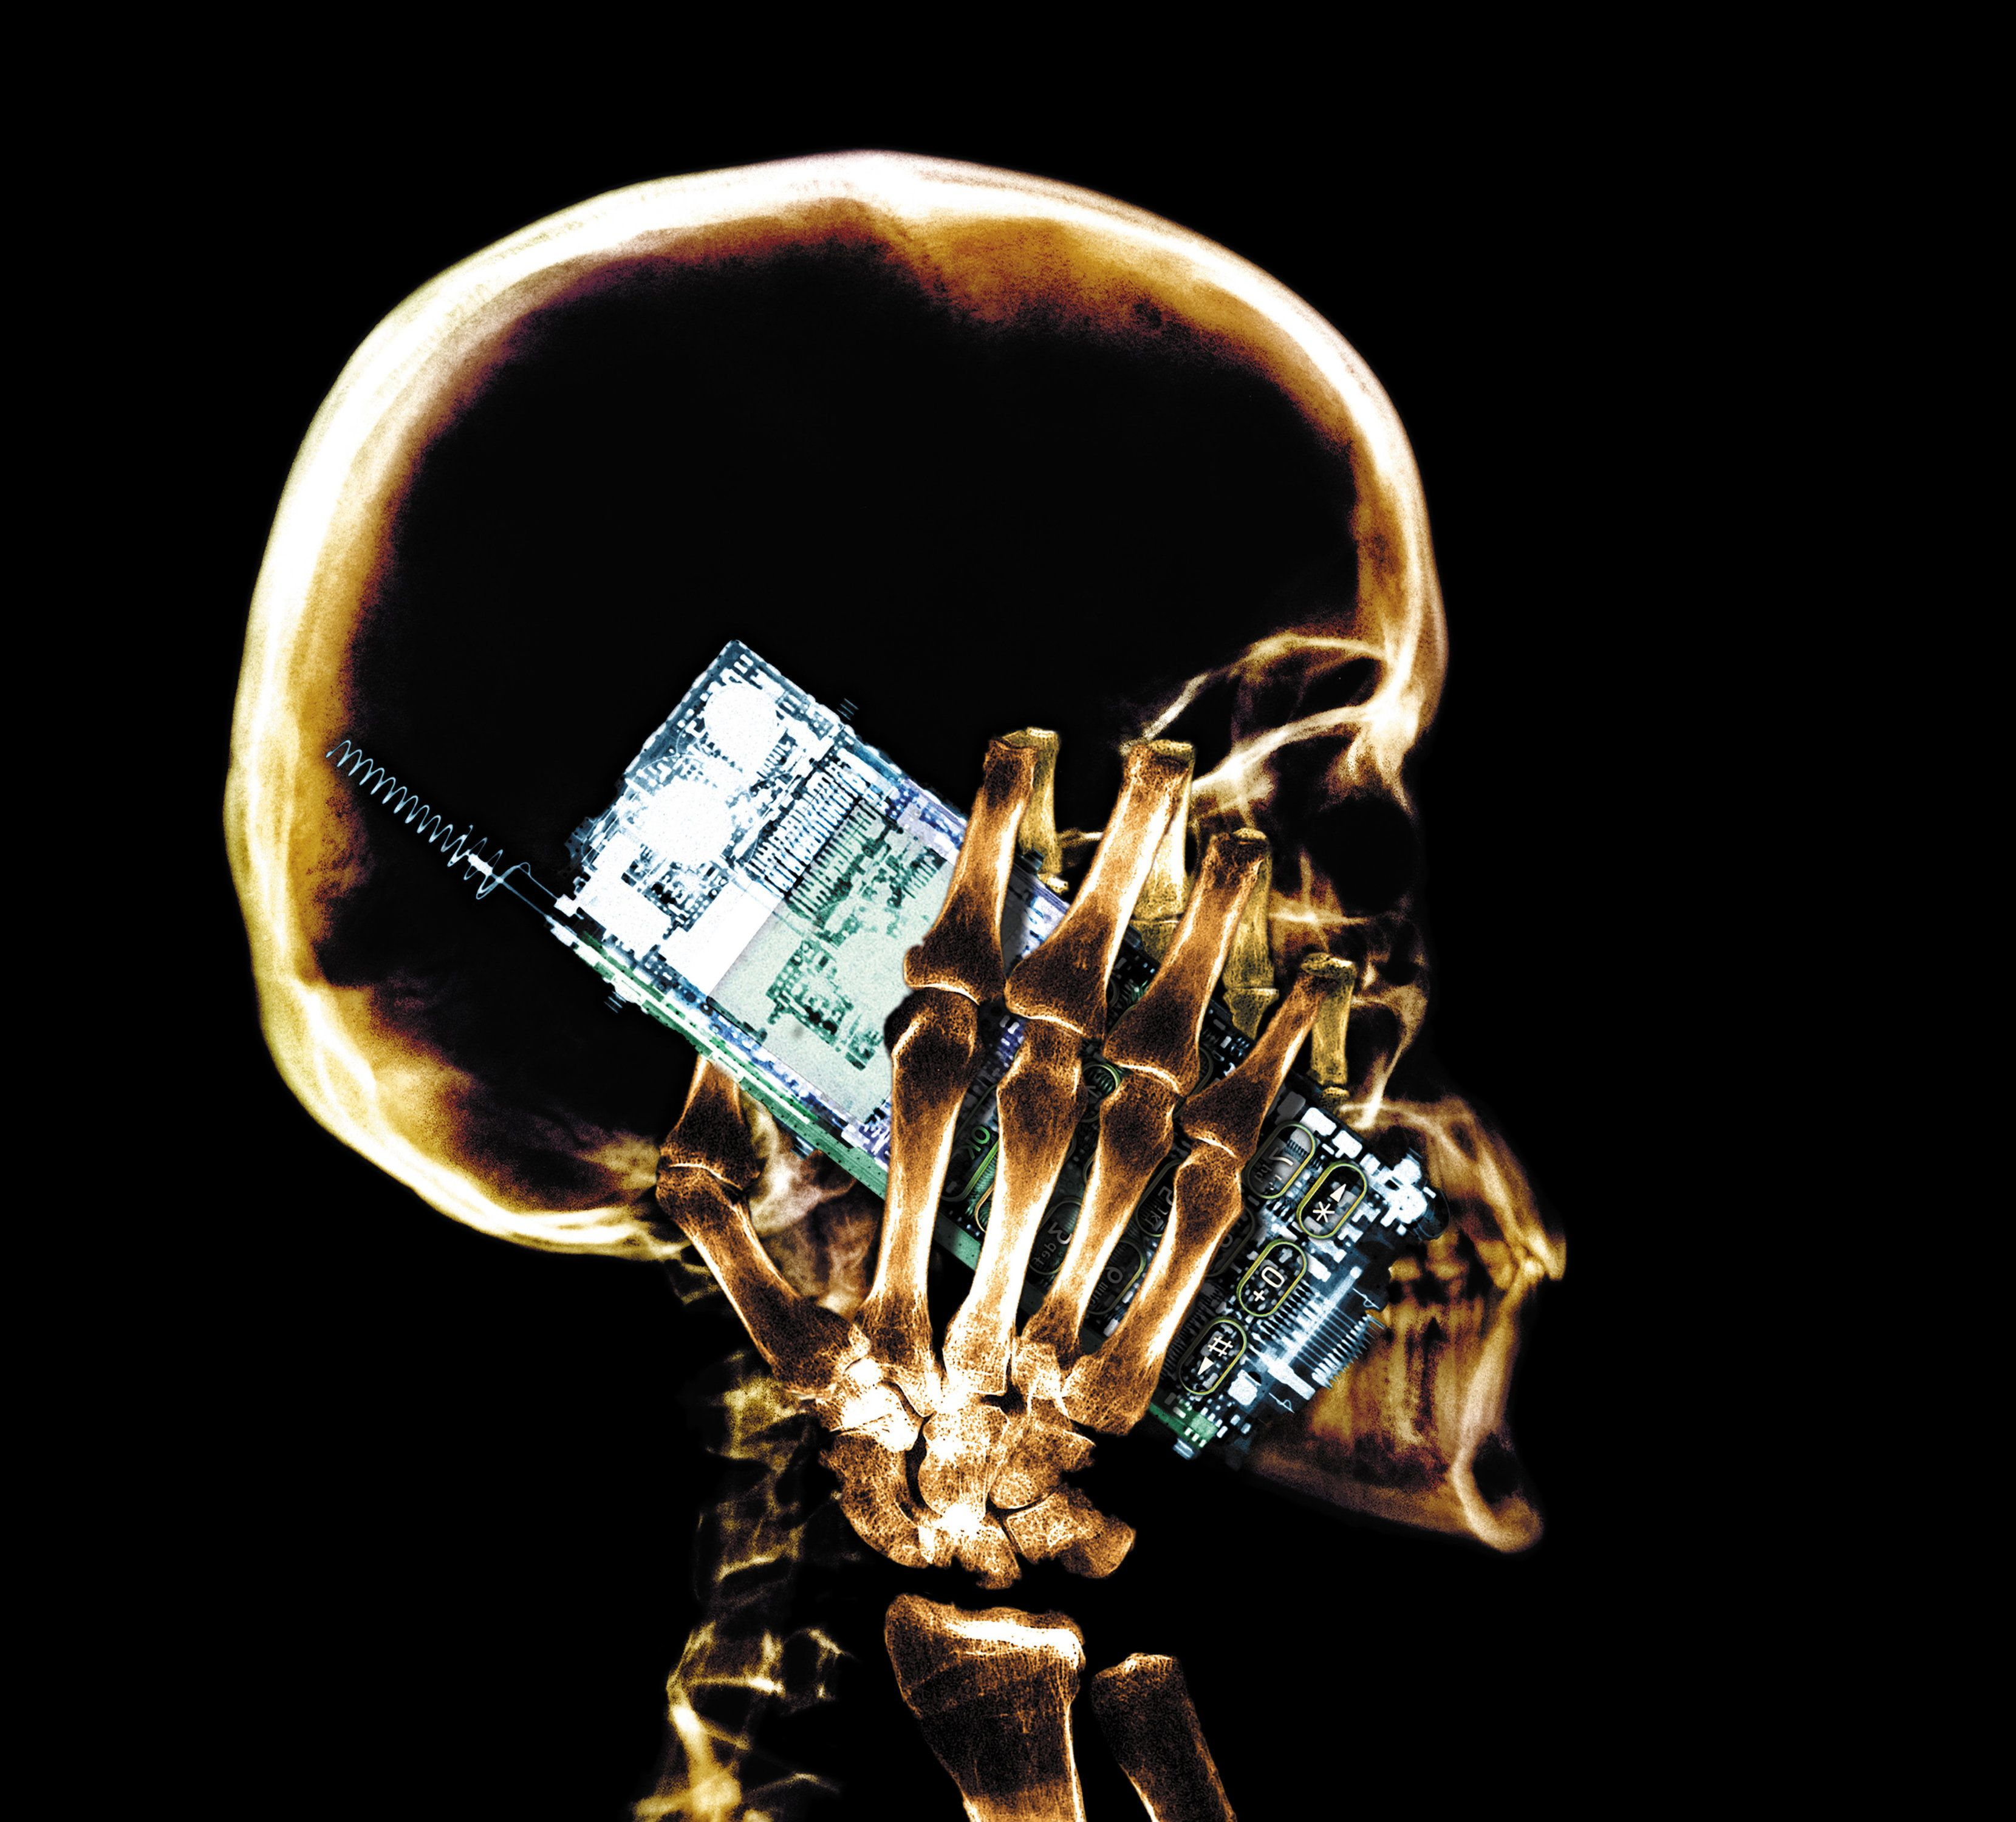 Skull holding cell phone to mouth